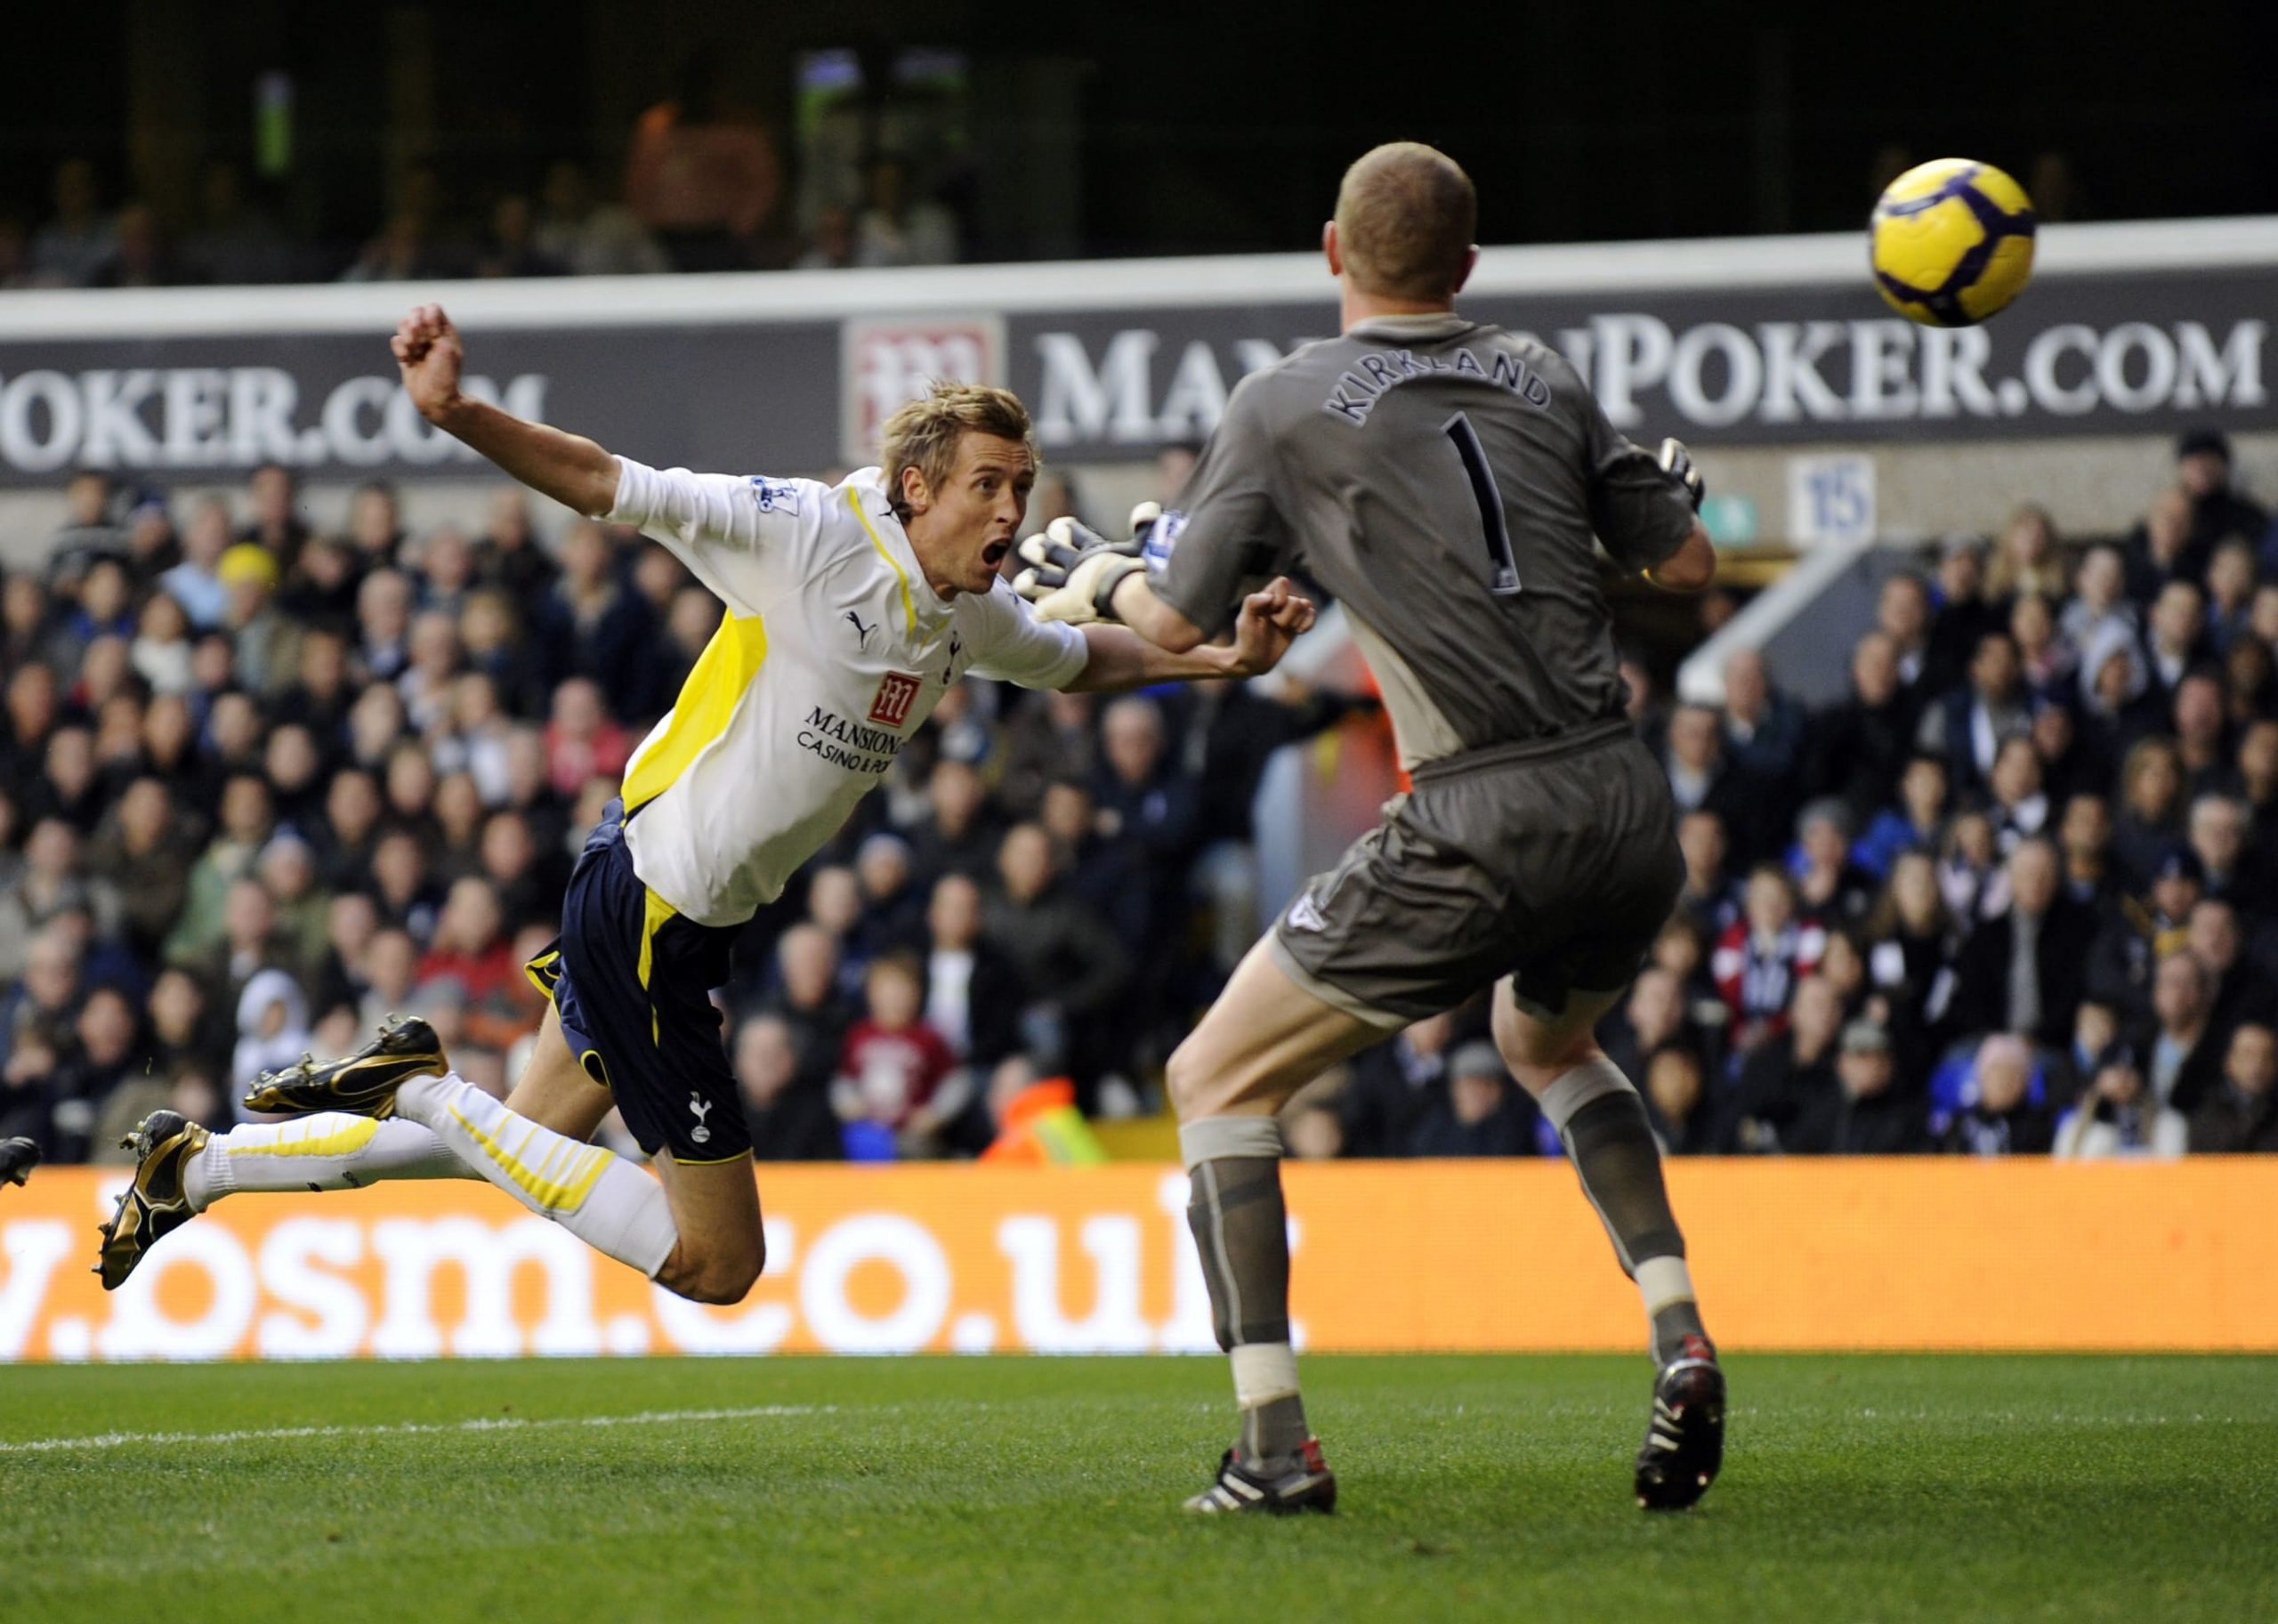 Crouch heads brilliantly to put Spurs 1-0 ahead with just 9 minutes played. (GETTY Images)